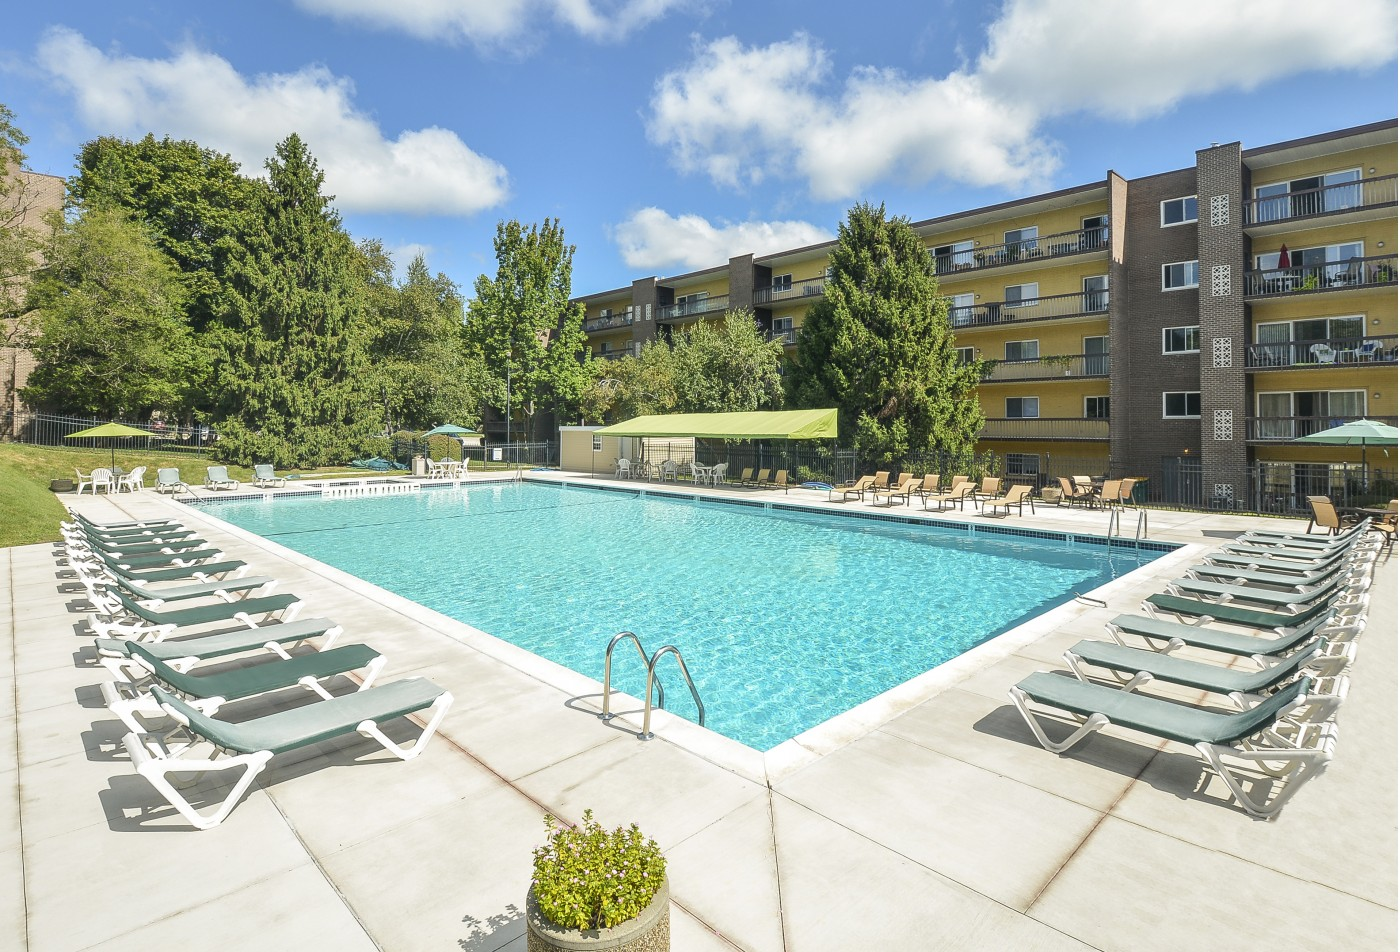 Swimming Pool | Apartment Homes in Berwyn, PA | Main Line Berwyn Apartments